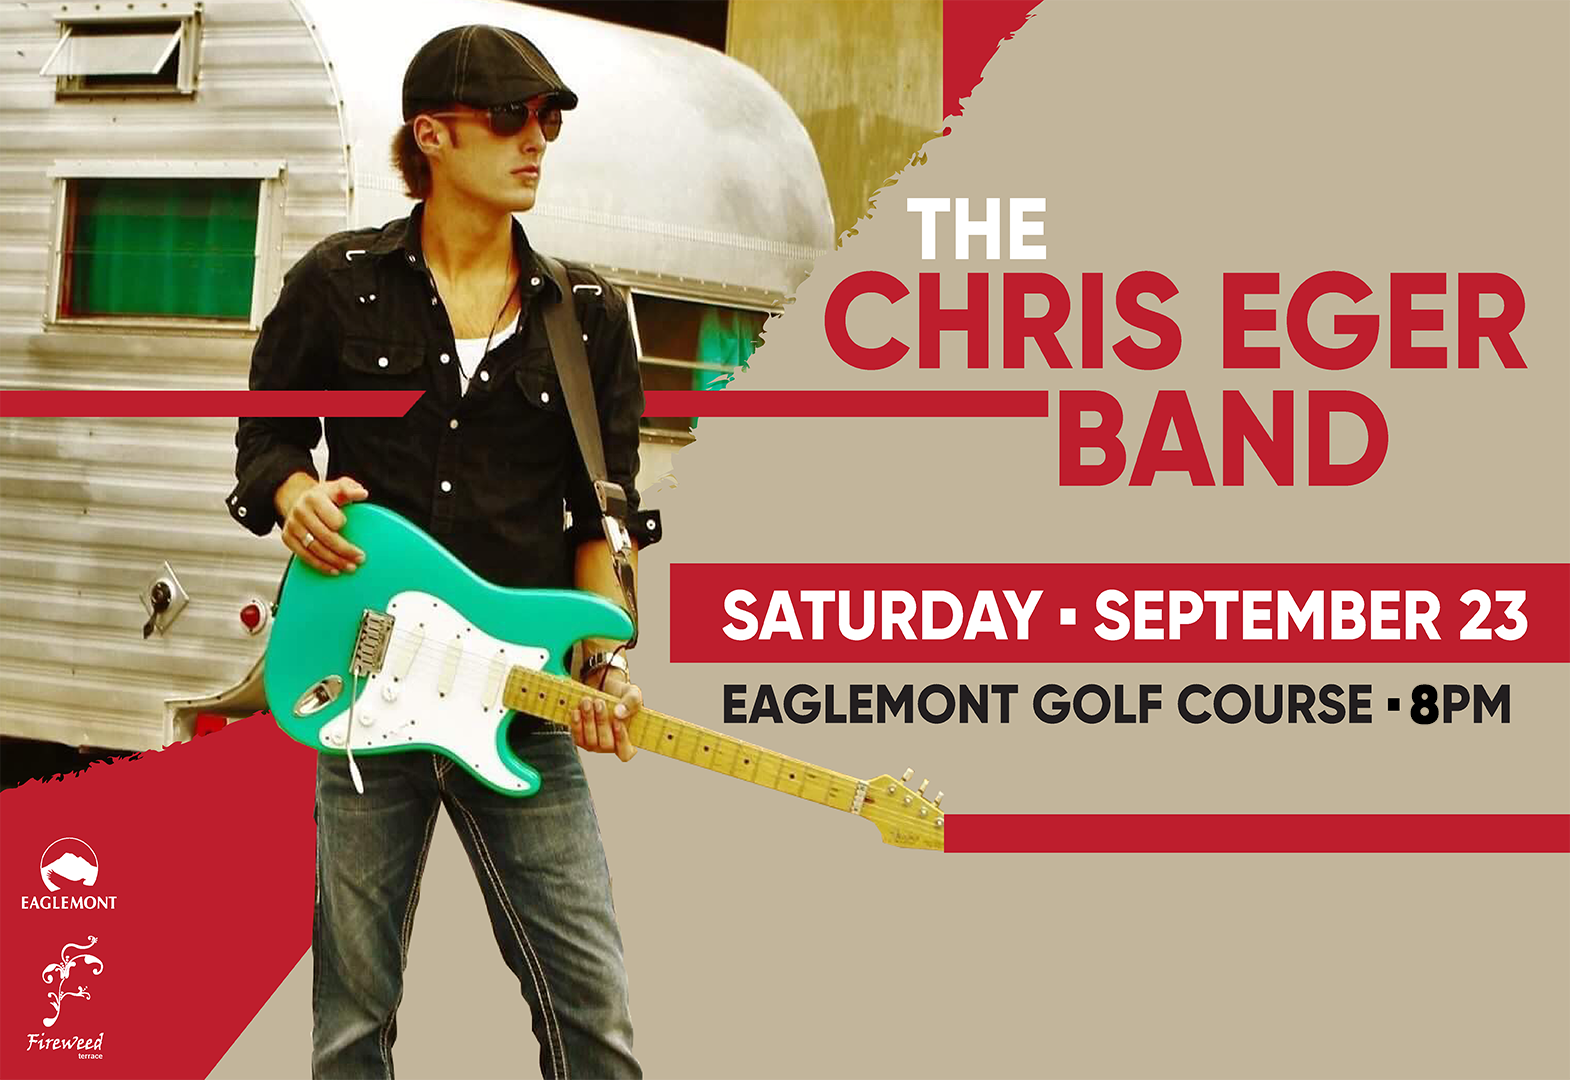 The Chris Eger Band - GENERAL.png